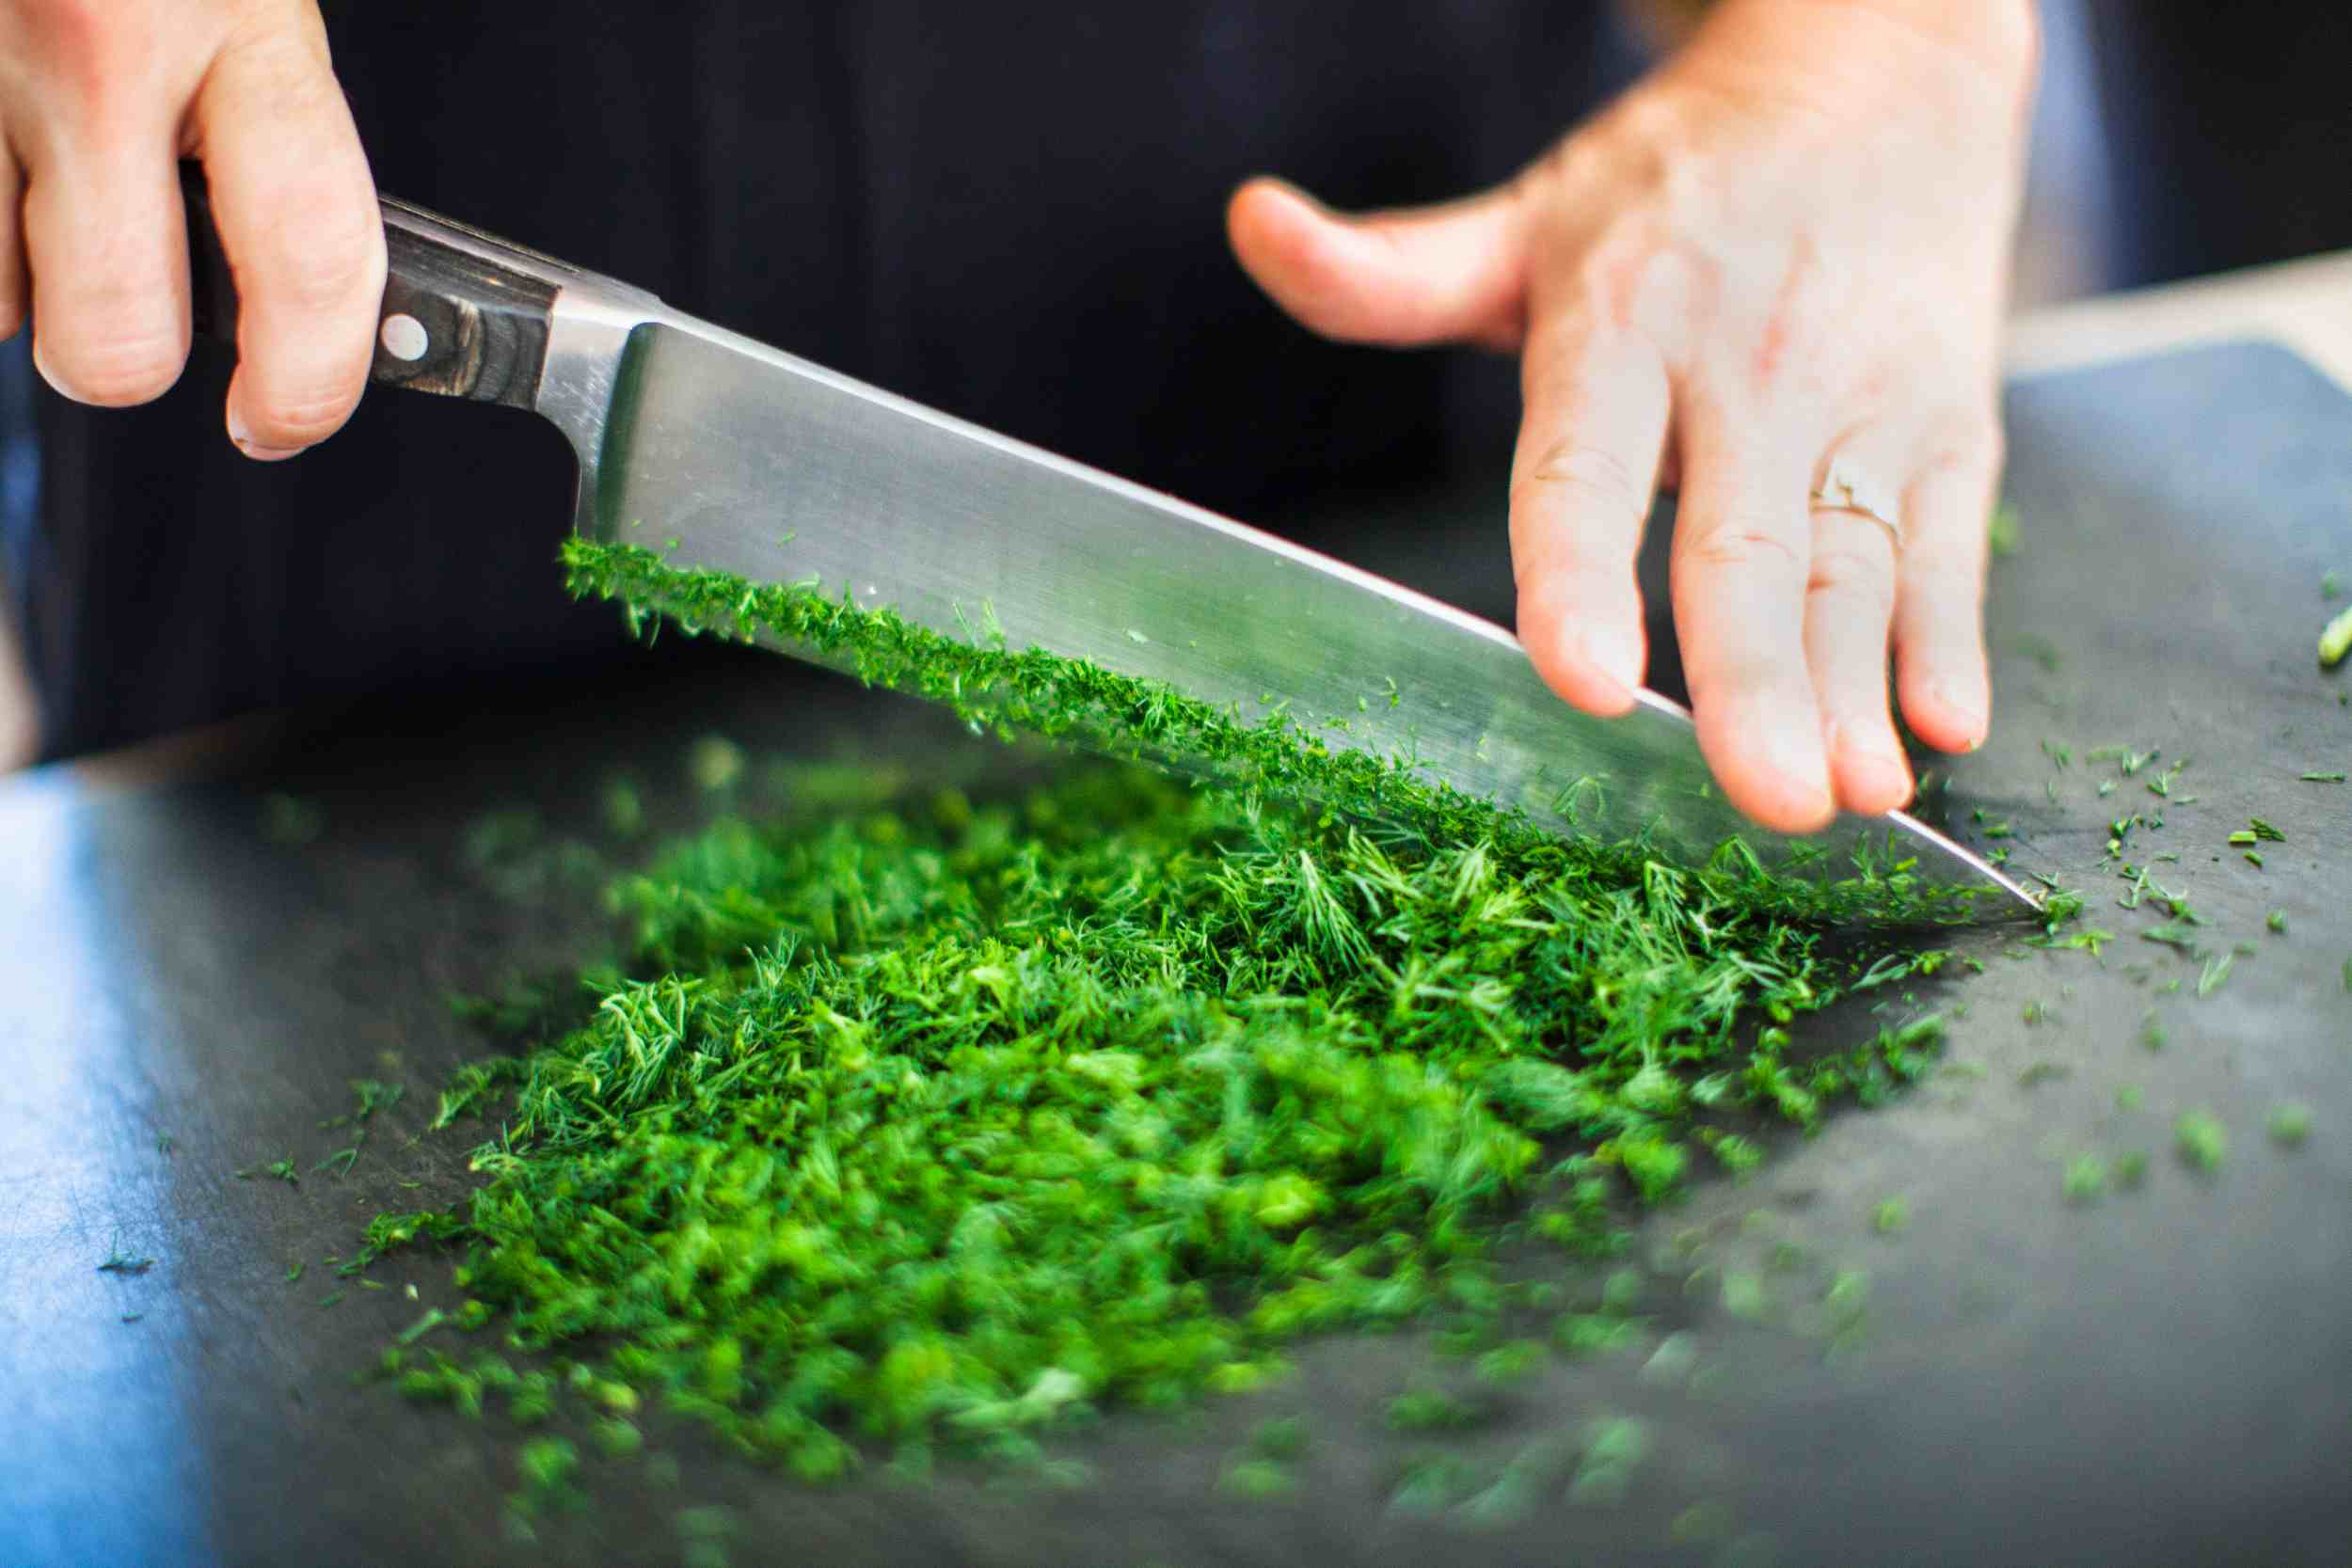 Using a chef's knife to chop fresh herbs